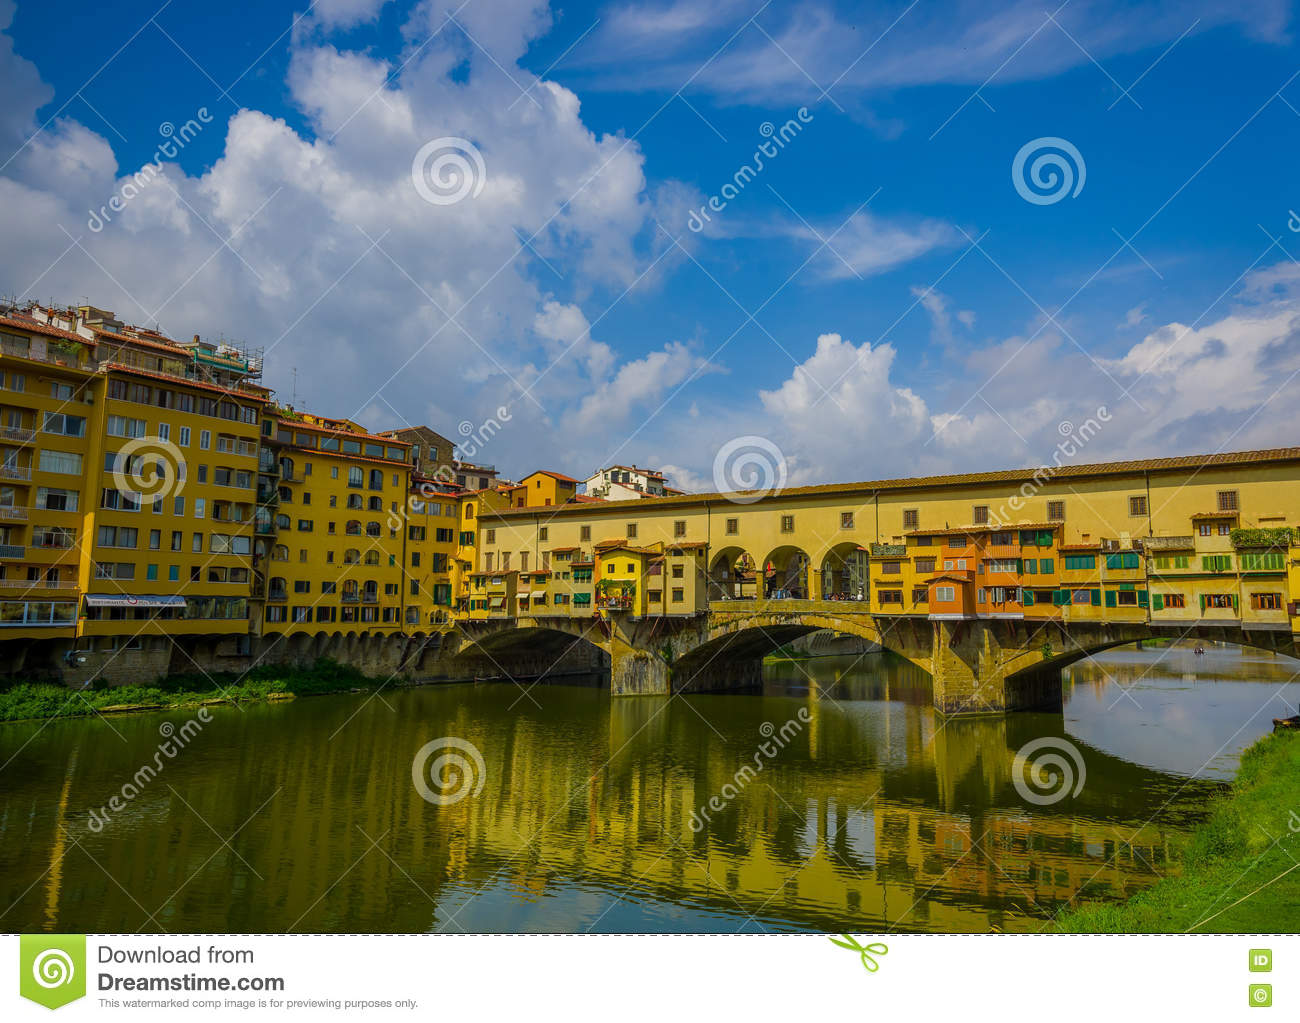 Ponte vecchio in florence italy editorial photo for Dream store firenze